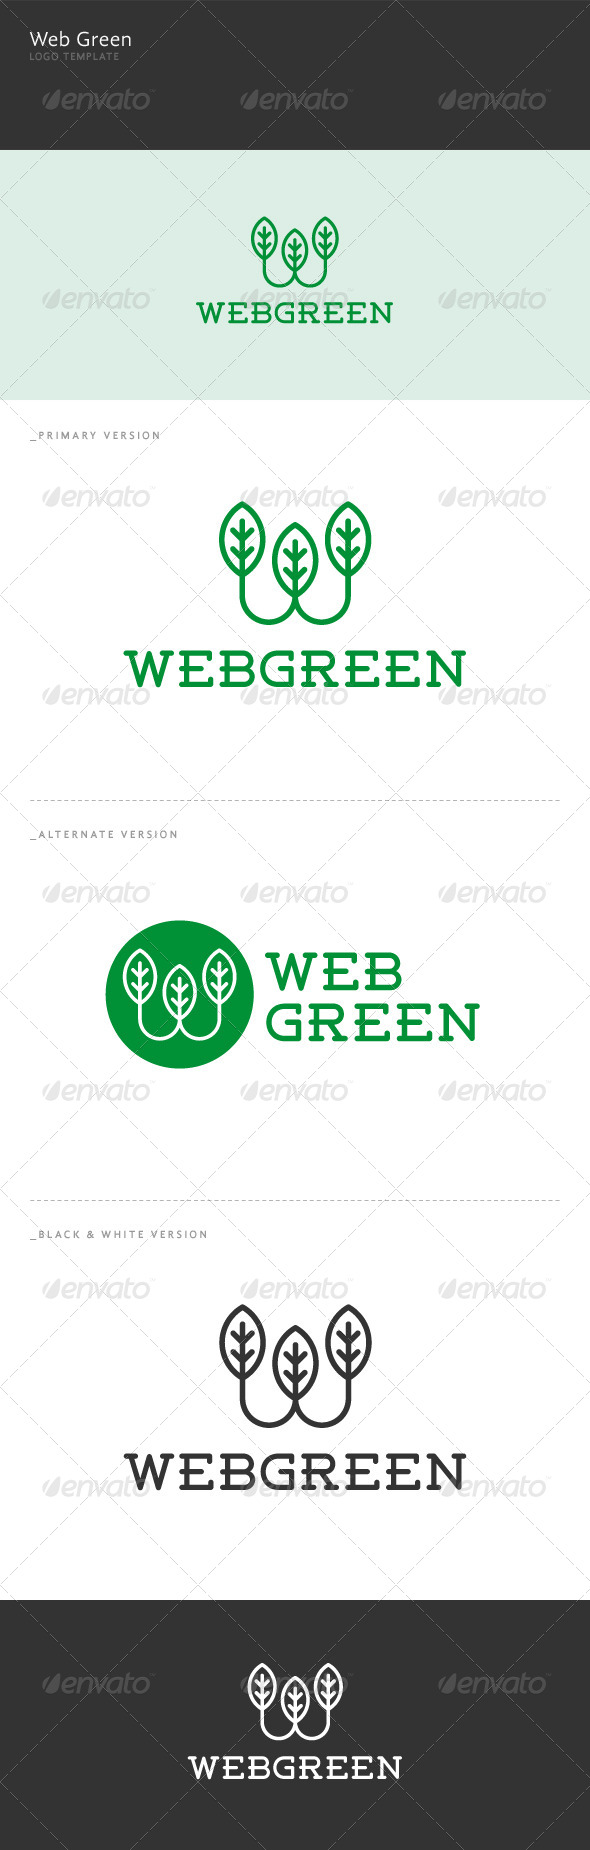 GraphicRiver Web Green W Letter Logo 5997725